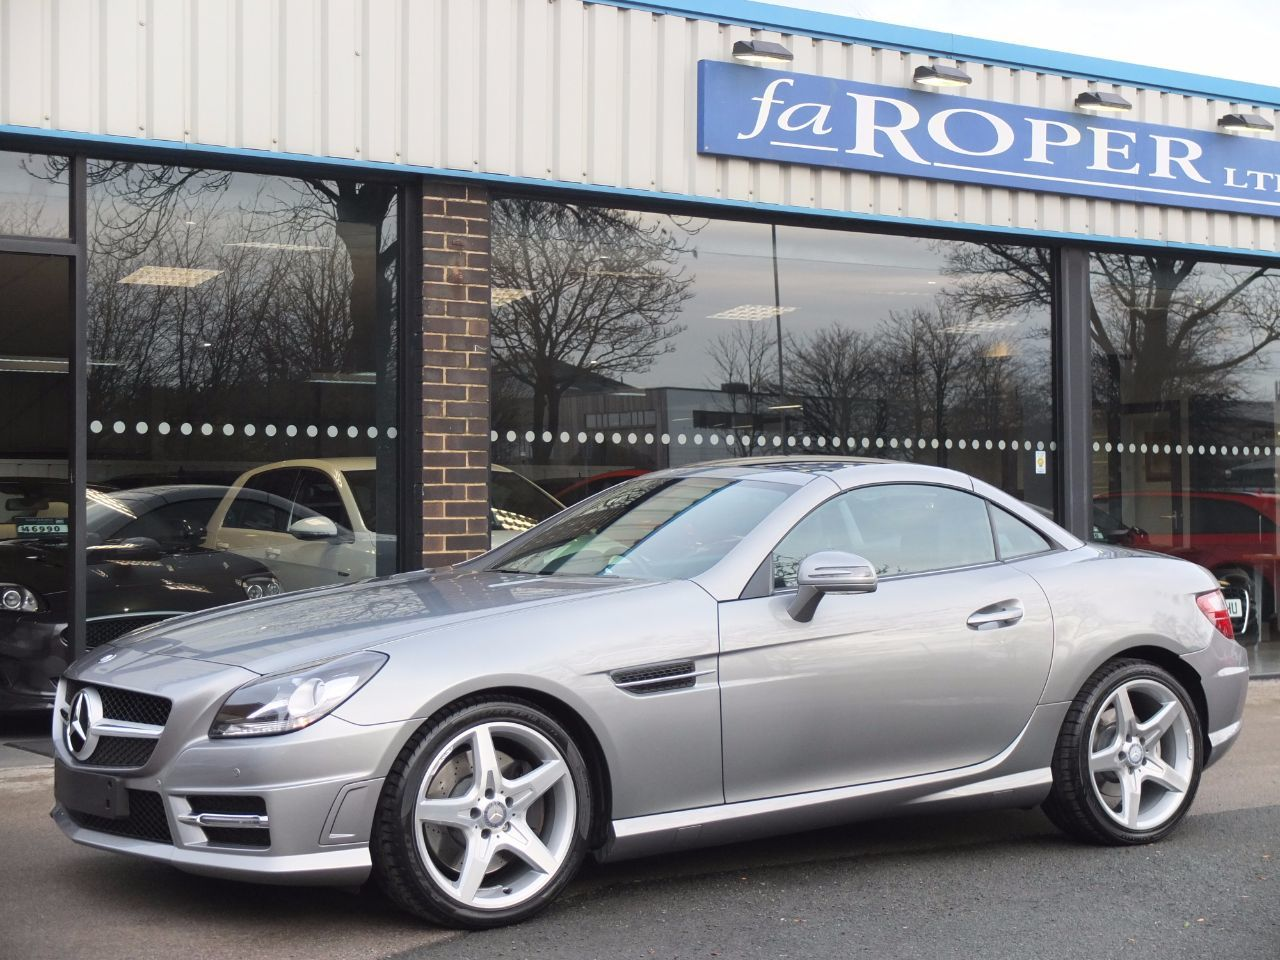 Mercedes-Benz SLK 2.1 SLK 250 CDI BlueEFFICIENCY AMG Sport Auto Convertible Diesel Palladium Silver Metallic